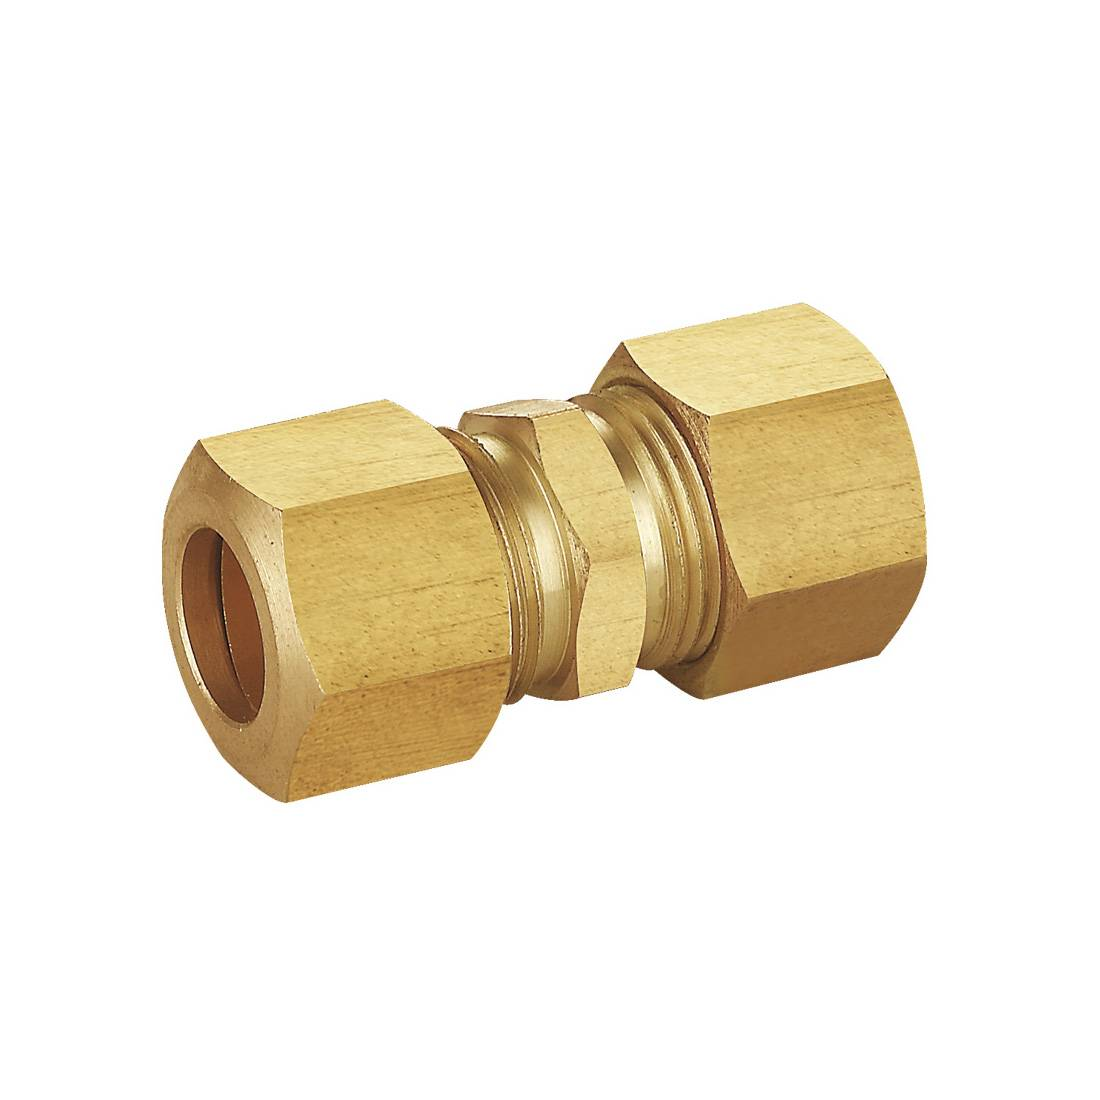 Brass Compression Fitting USA Featured Image